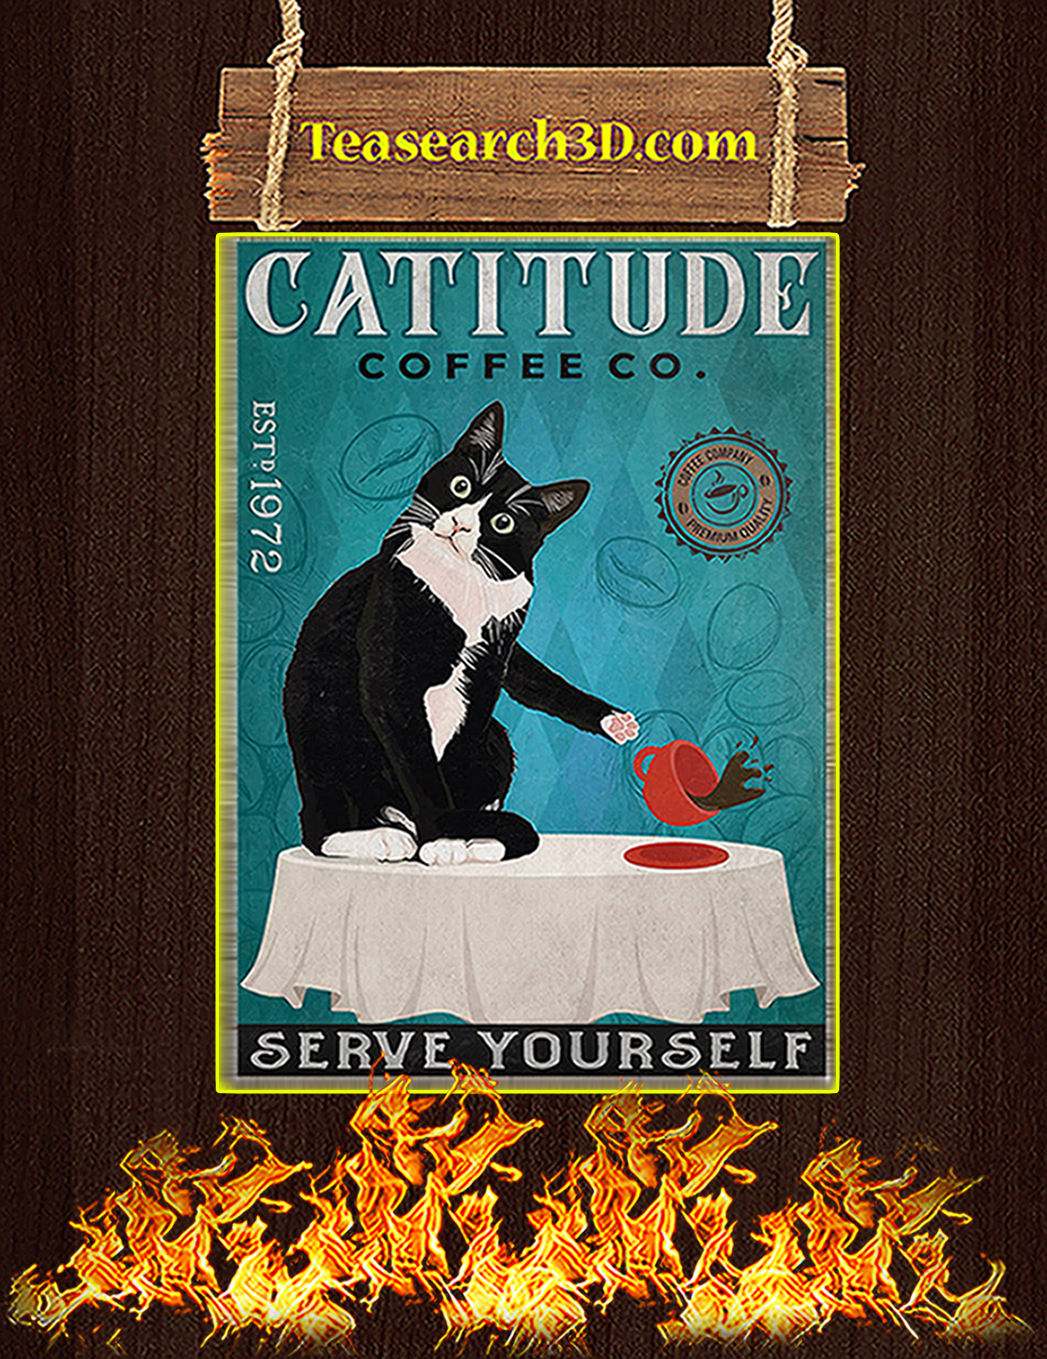 Catitude coffee co serve yourself poster A1